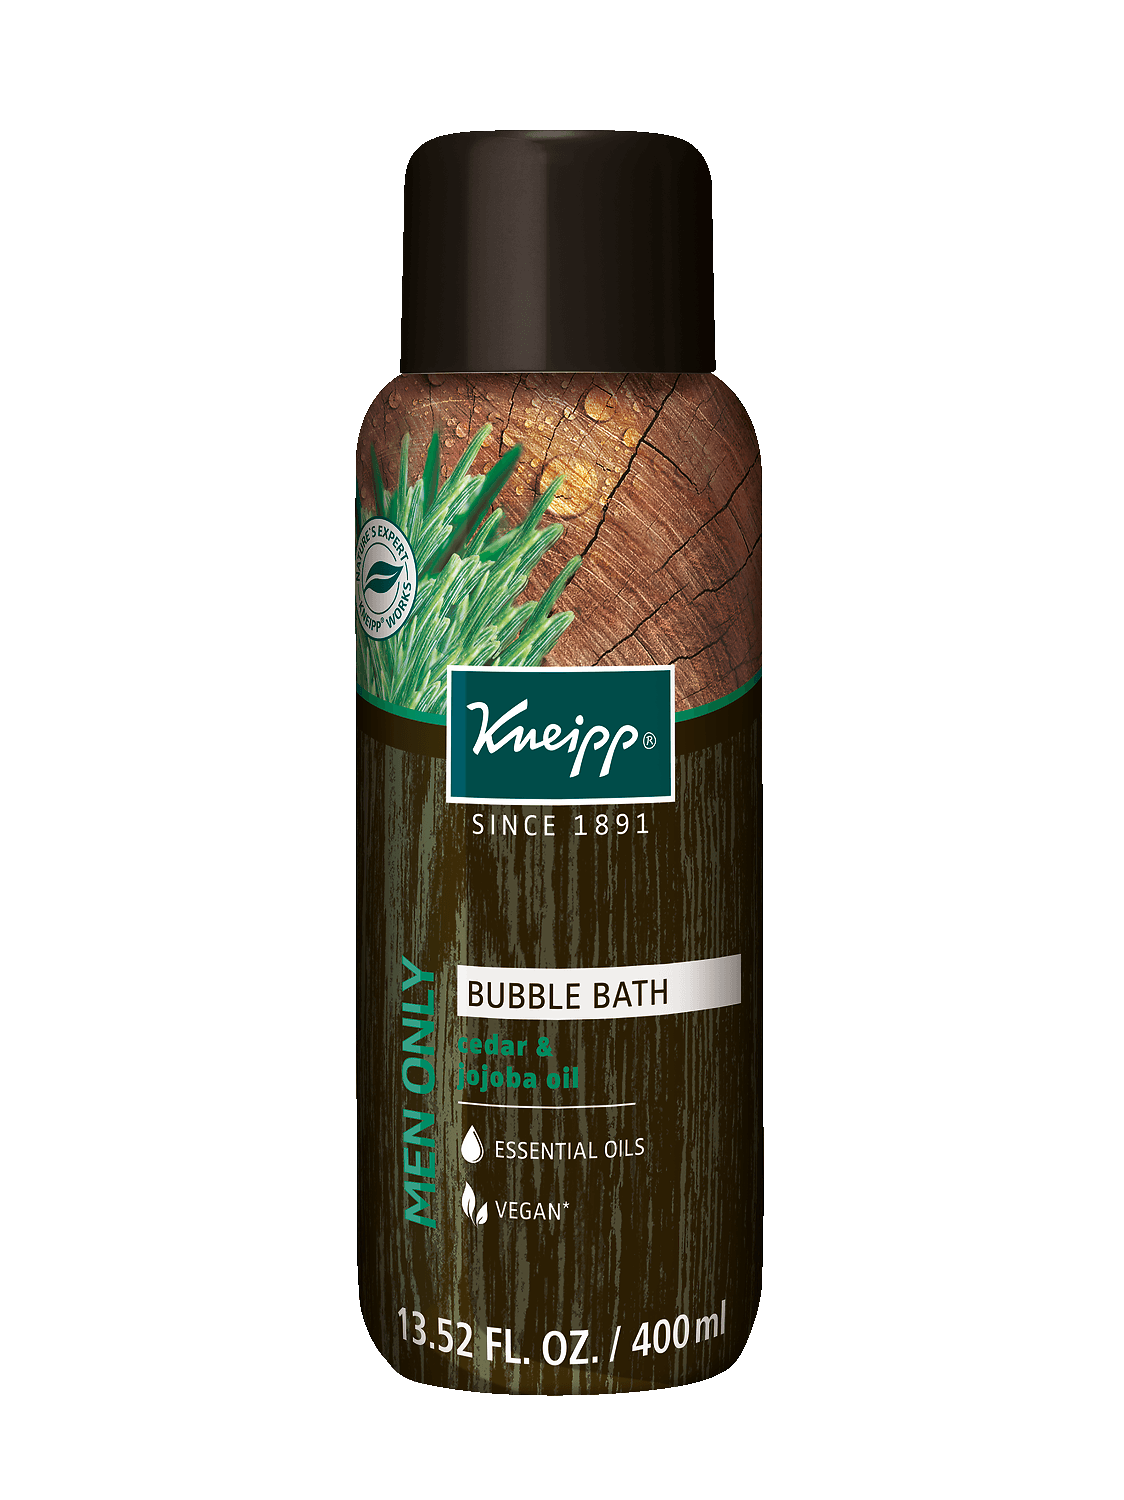 Kneipp Men Only Bubble Bath 400 ml at the Summit Spa